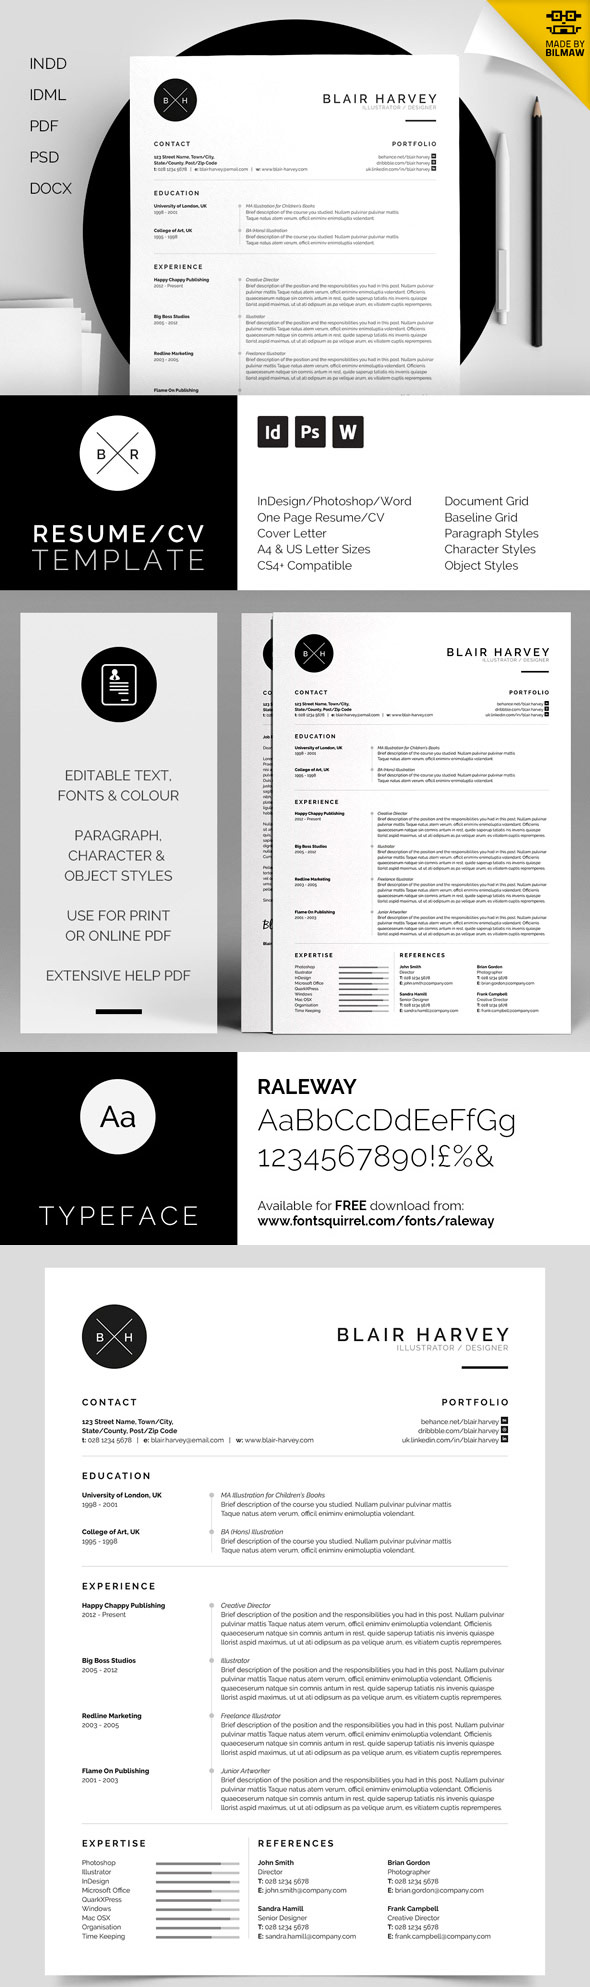 25 creative resume templates to land a new job in style blair branded minimal resume template set